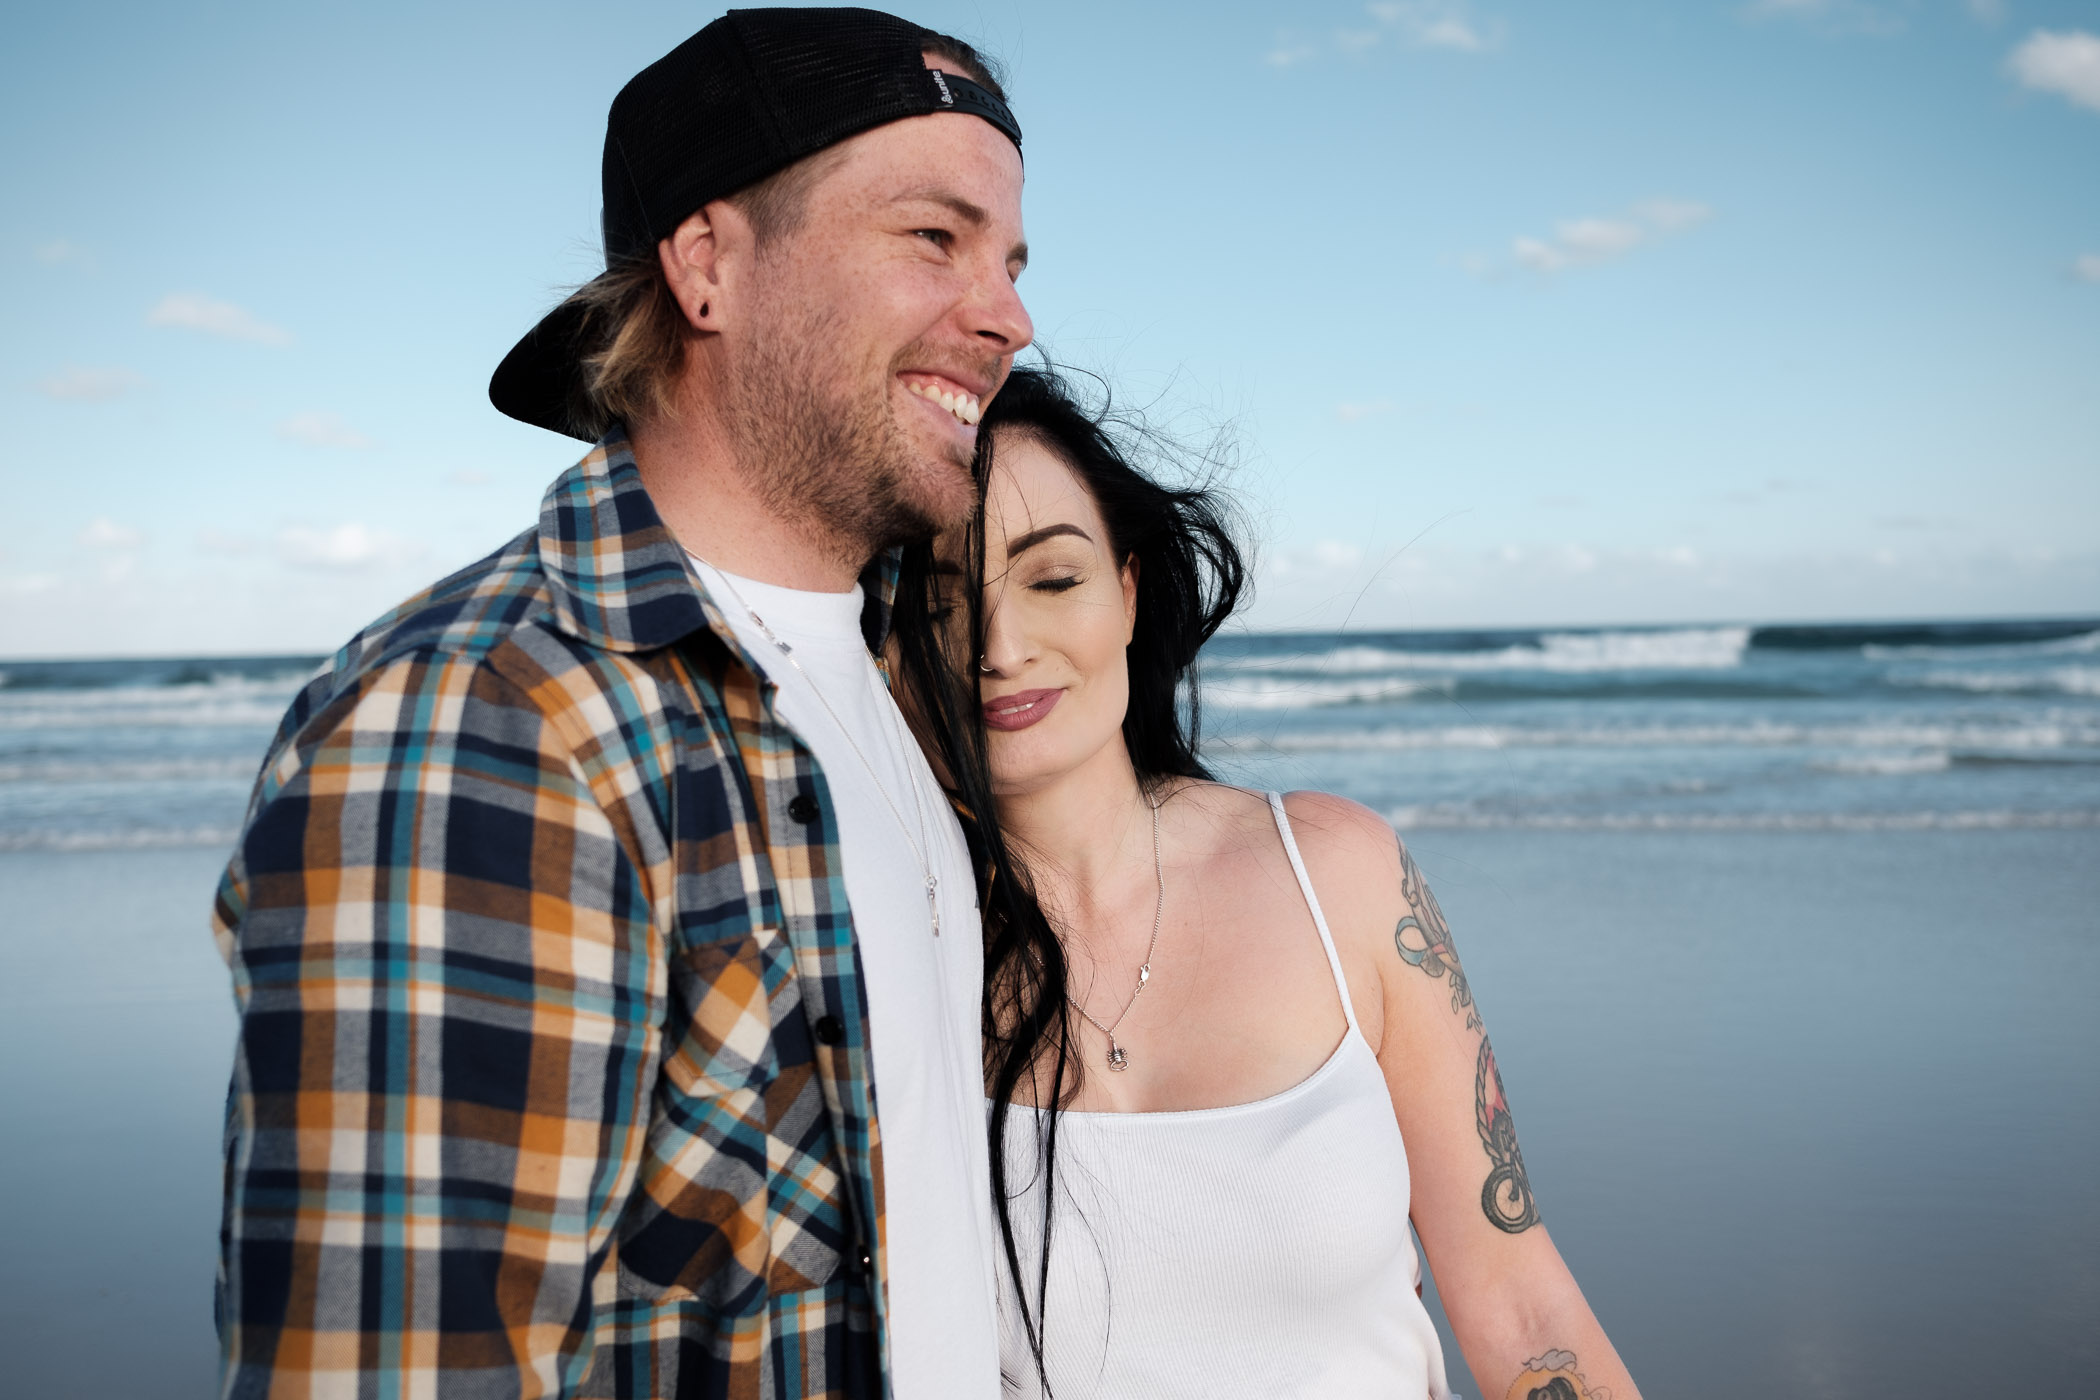 Engaged couple with Dachshund at Fingal Headland. Relaxed, fun, adventurous and candid engagement photography gold coast